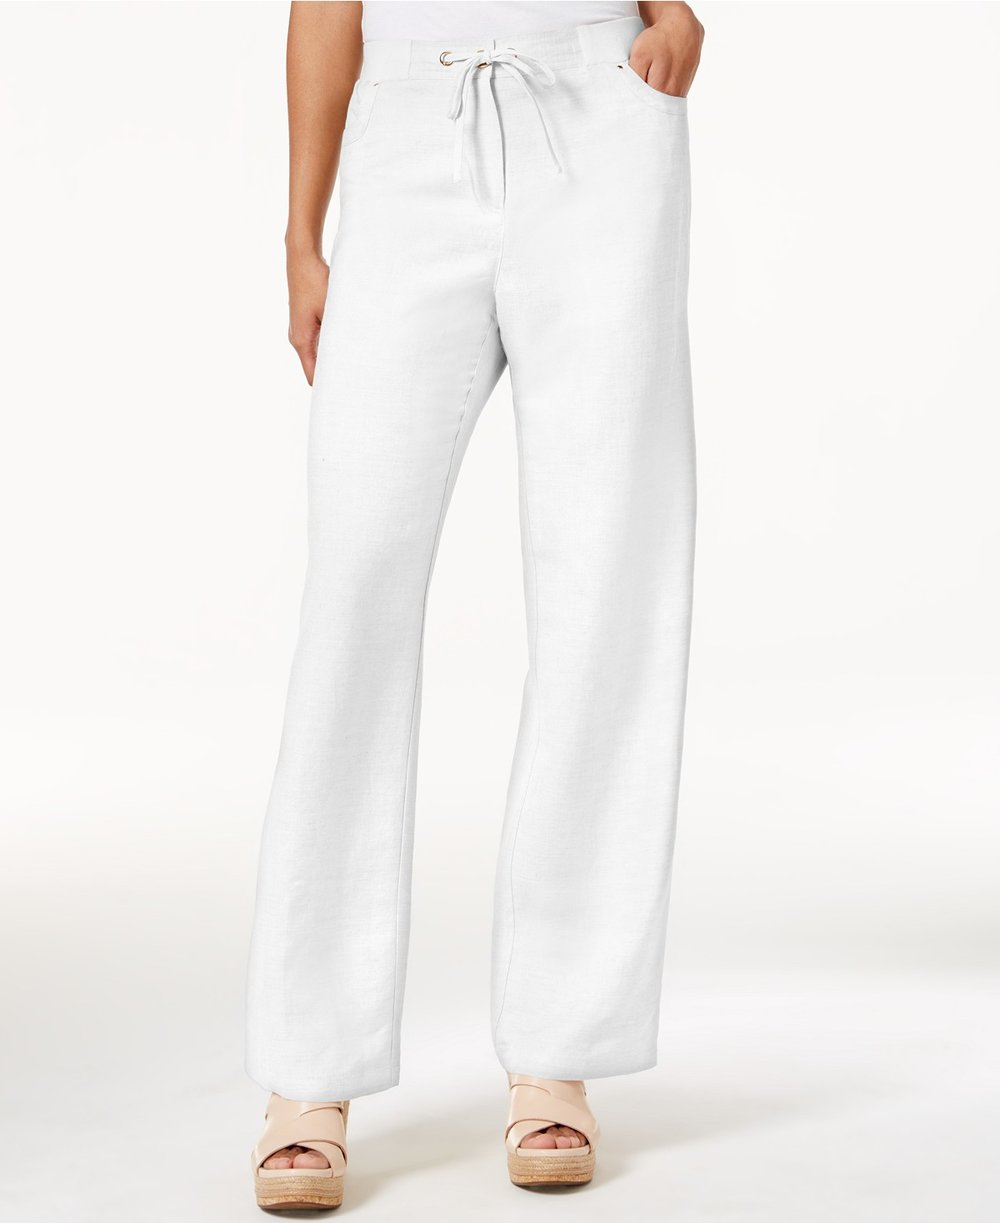 JM Collection  Petite Linen-Blend Drawstring Pants. Available in three colors. Macy's. $49.